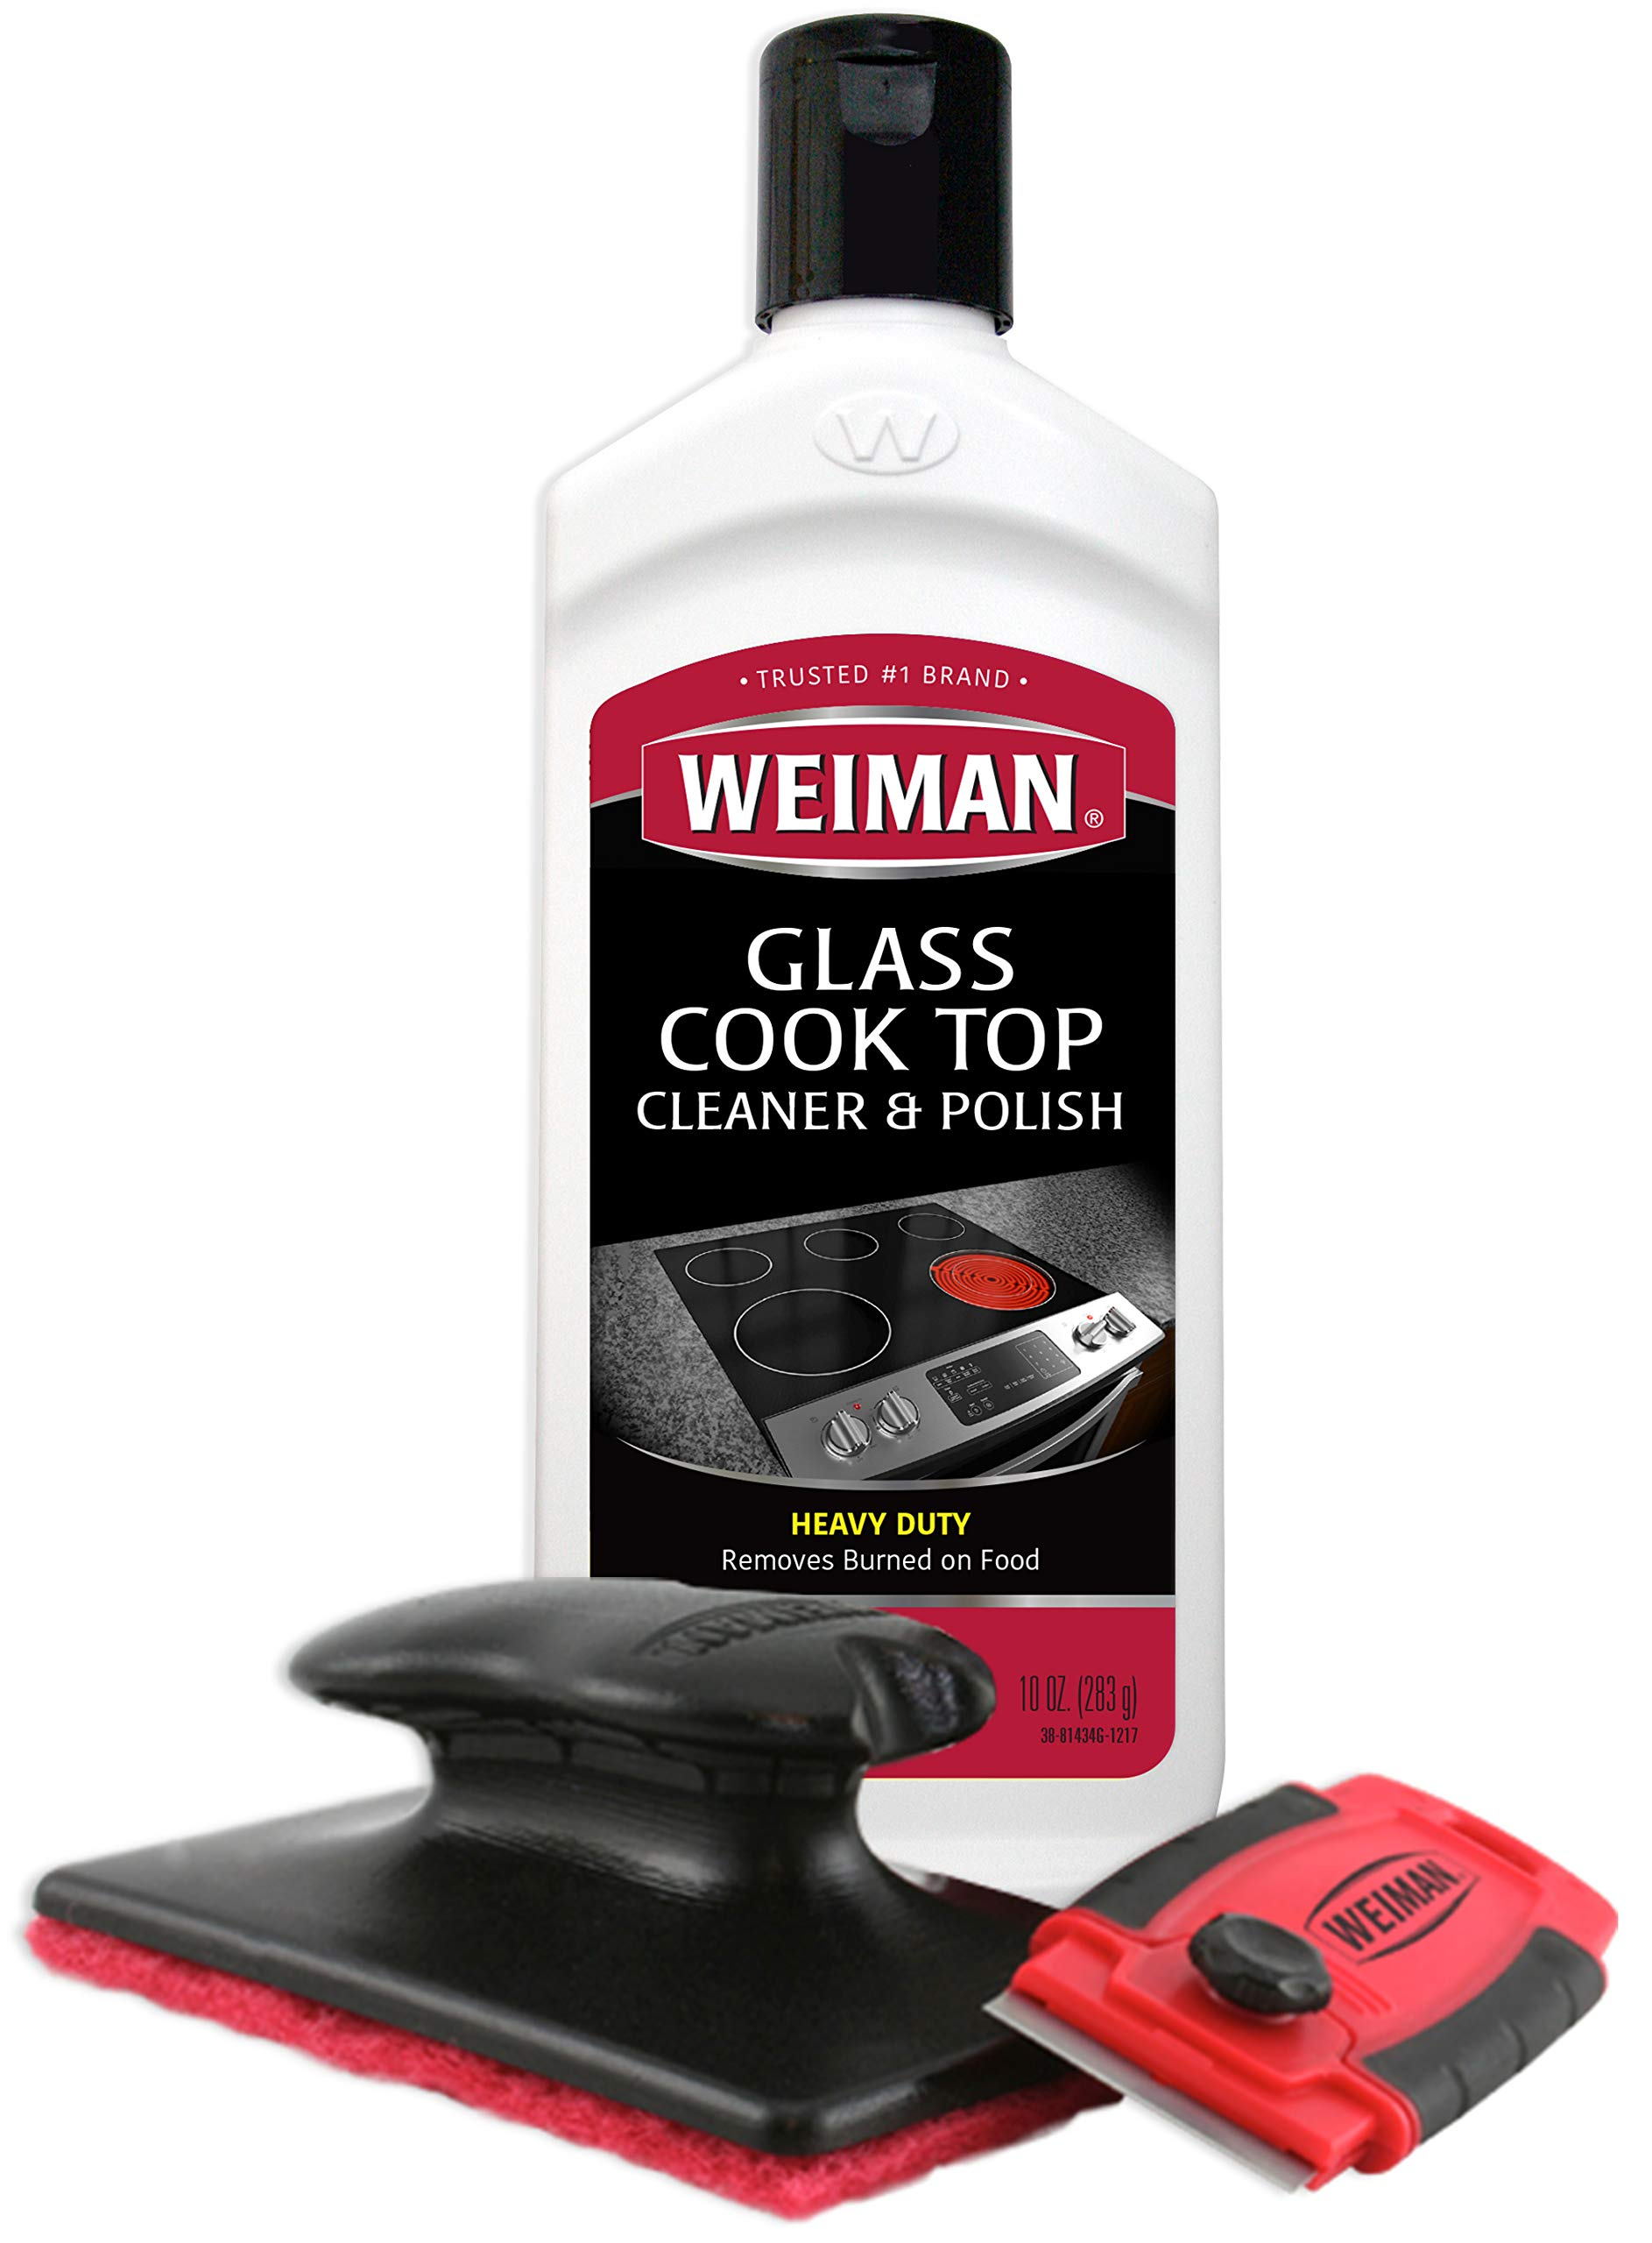 Weiman Cooktop Cleaner Kit Cook Top Cleaner And Polish 10 Oz Scrubbing Pad Cleaning Tool Cooktop Razor Scraper Buy Online At Best Price In Uae Amazon Ae